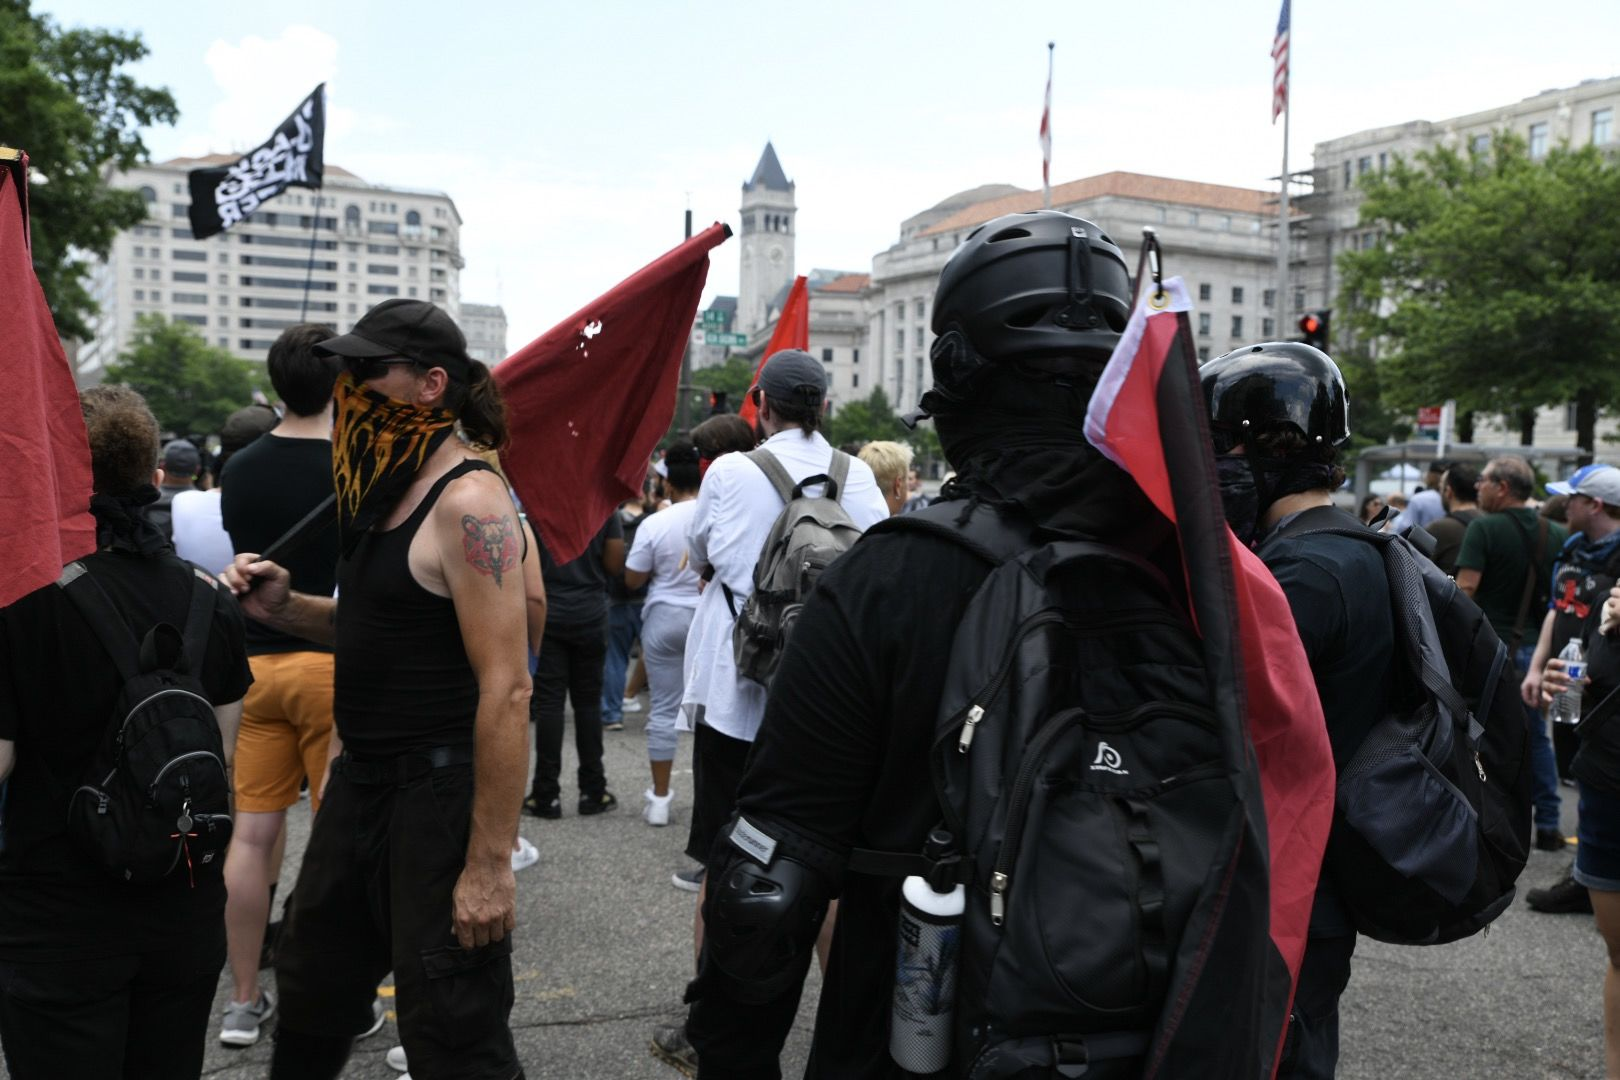 Far-left activists known as antifa wear helmets and dress in all black as they patrol Washington, D.C.'s 14th Street to confront supporters of President Donald Trump on July 6, 2019. Trump supporters and anti-fascist organizers held dueling rallies across the street from each other, leading to high tensions as D.C. and U.S. Park Police largely held the peace. (WTOP/Alejandro Alvarez)